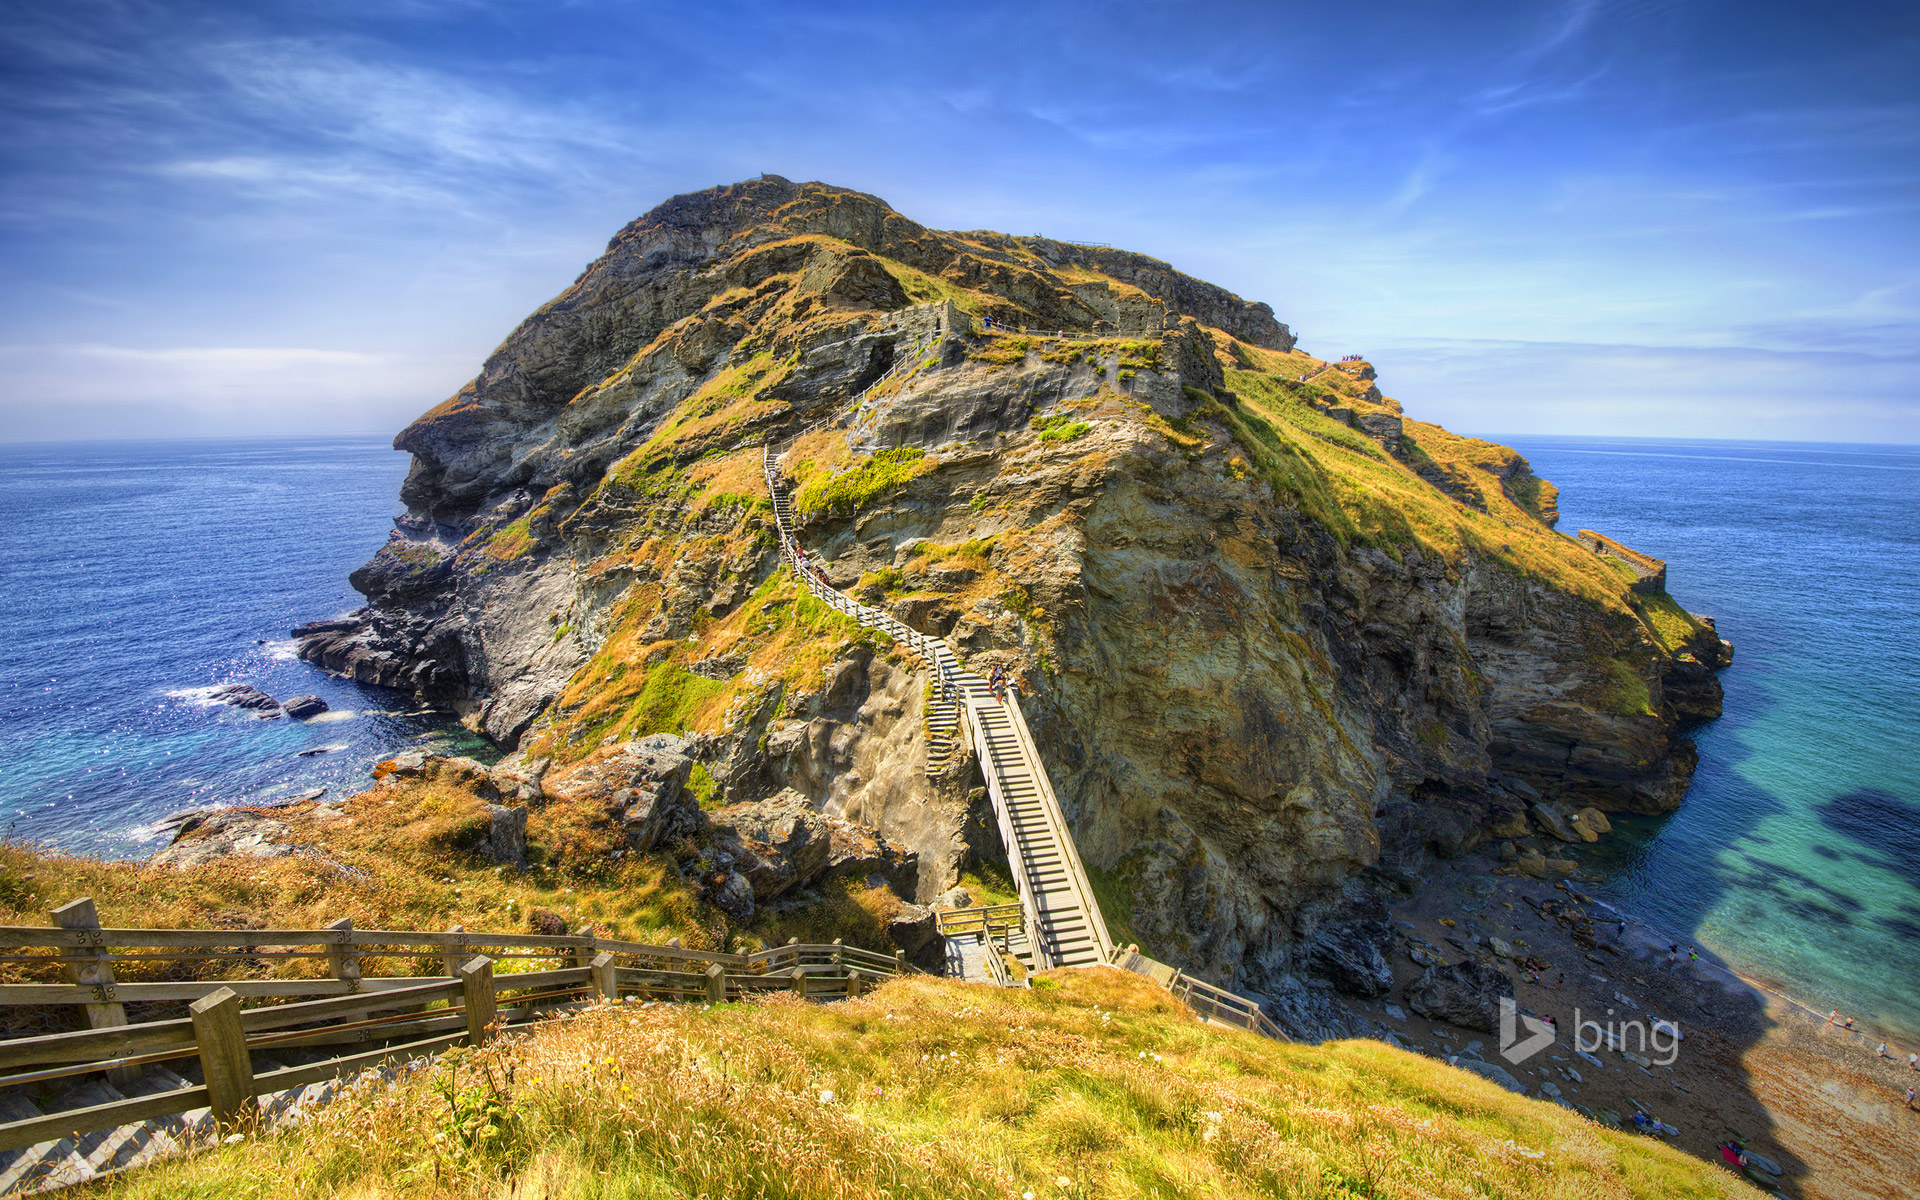 Tintagel on the Atlantic coast of Cornwall